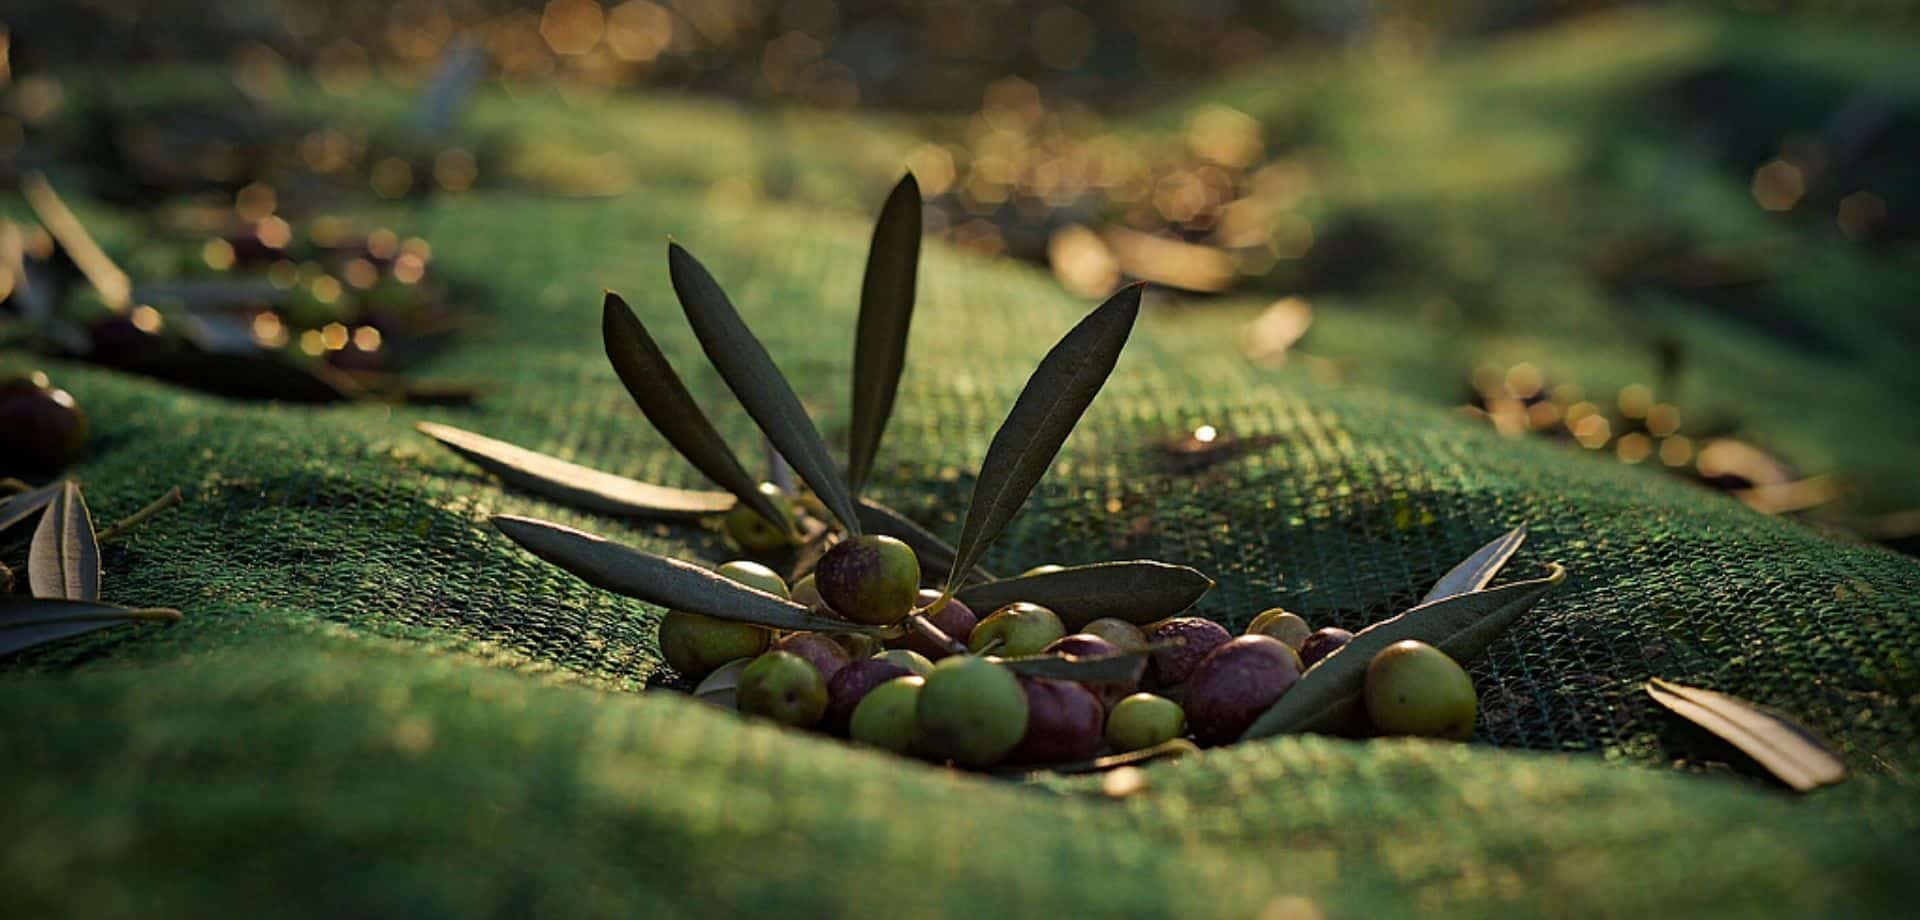 In Seggiano, ancient flavours and olive oil